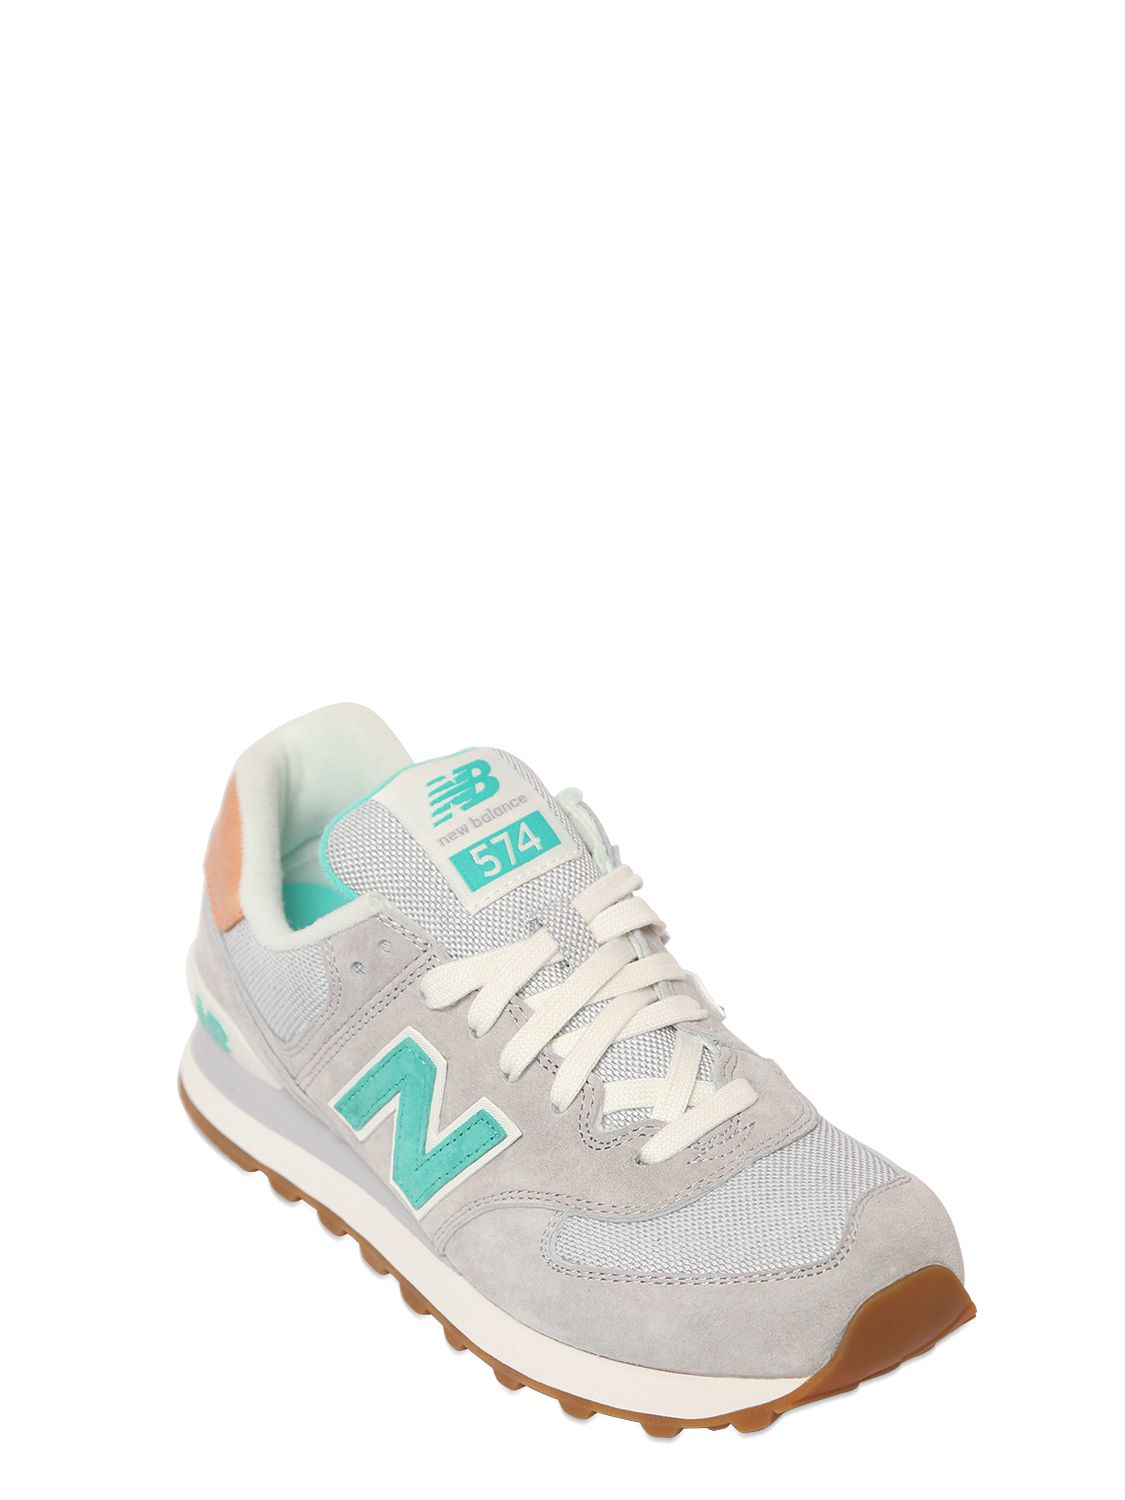 ... real gallery. previously sold at luisa via roma womens new balance 574  644fe 03059 12a25c40e